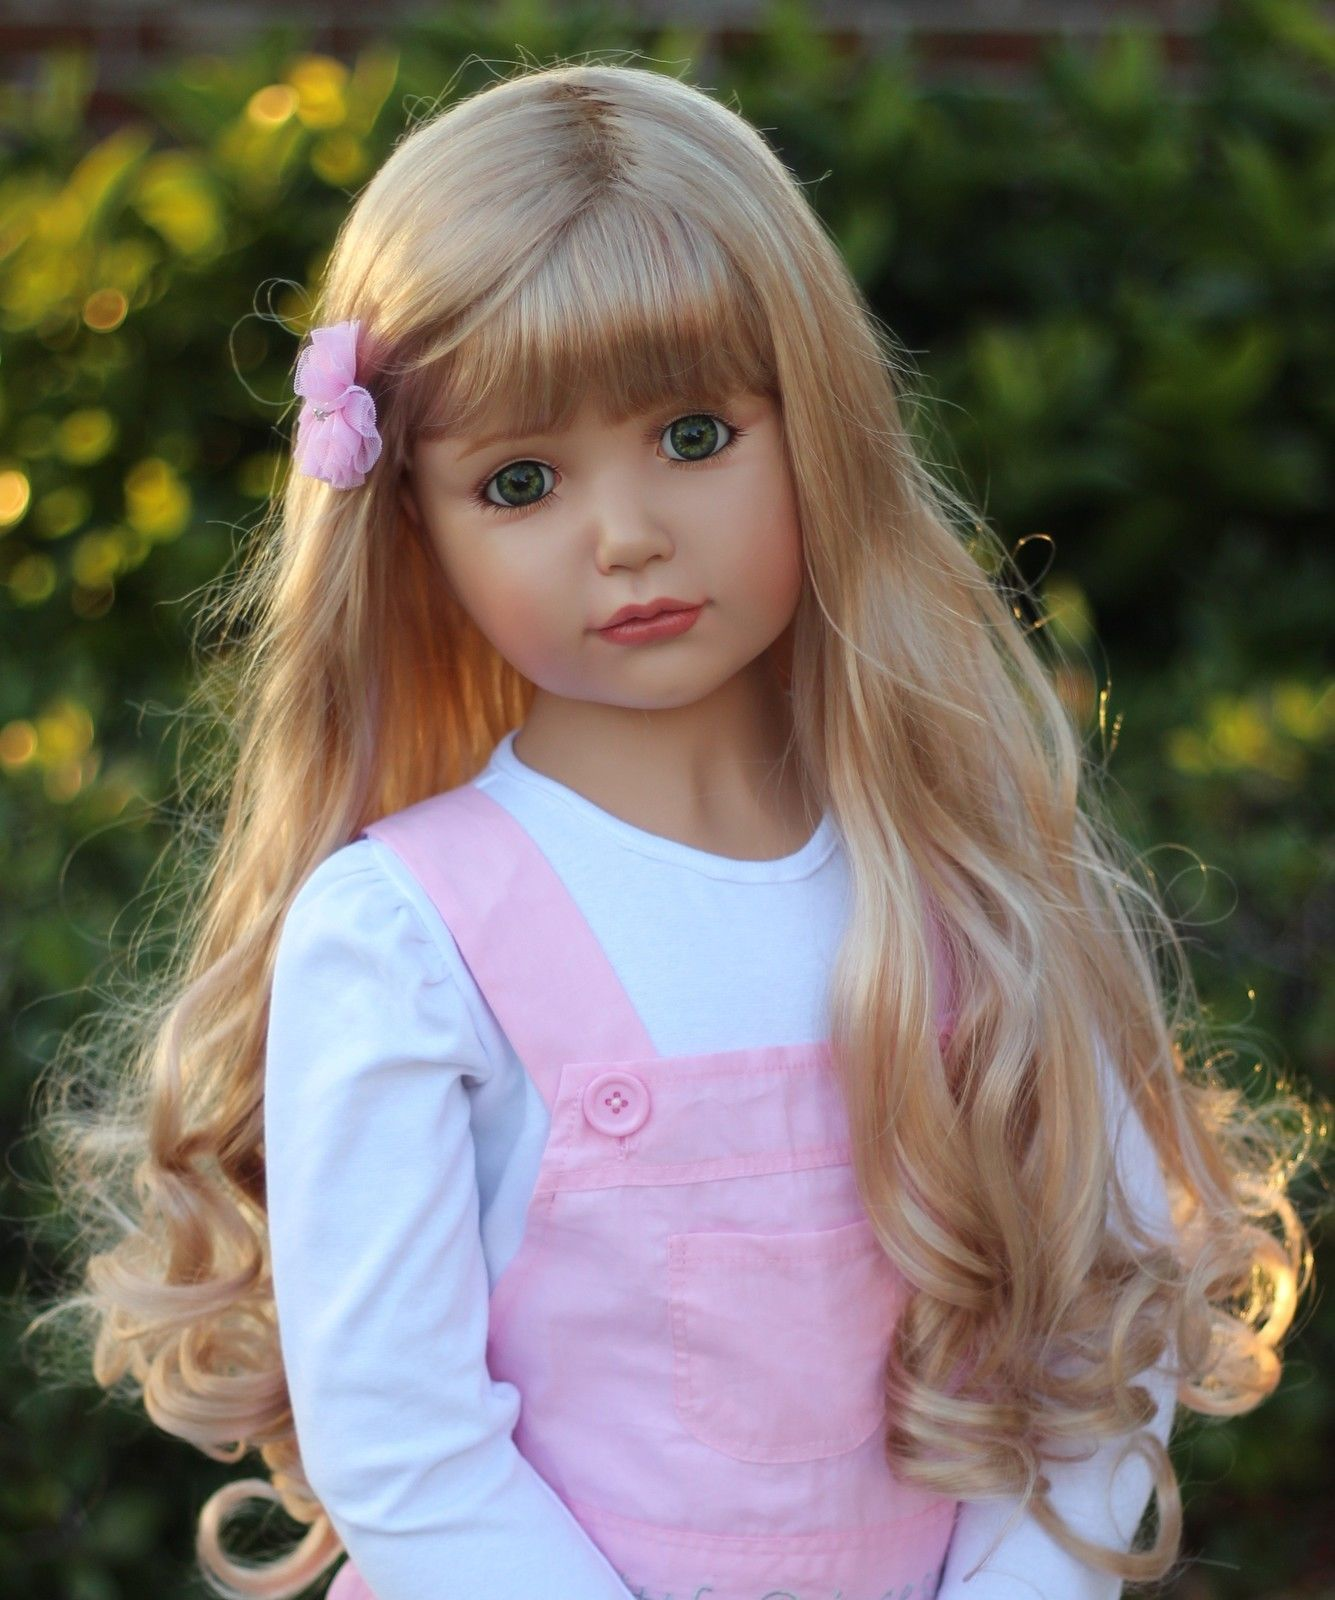 Nwt Rare Masterpiece Dolls Emily Blonde Green Eyes By